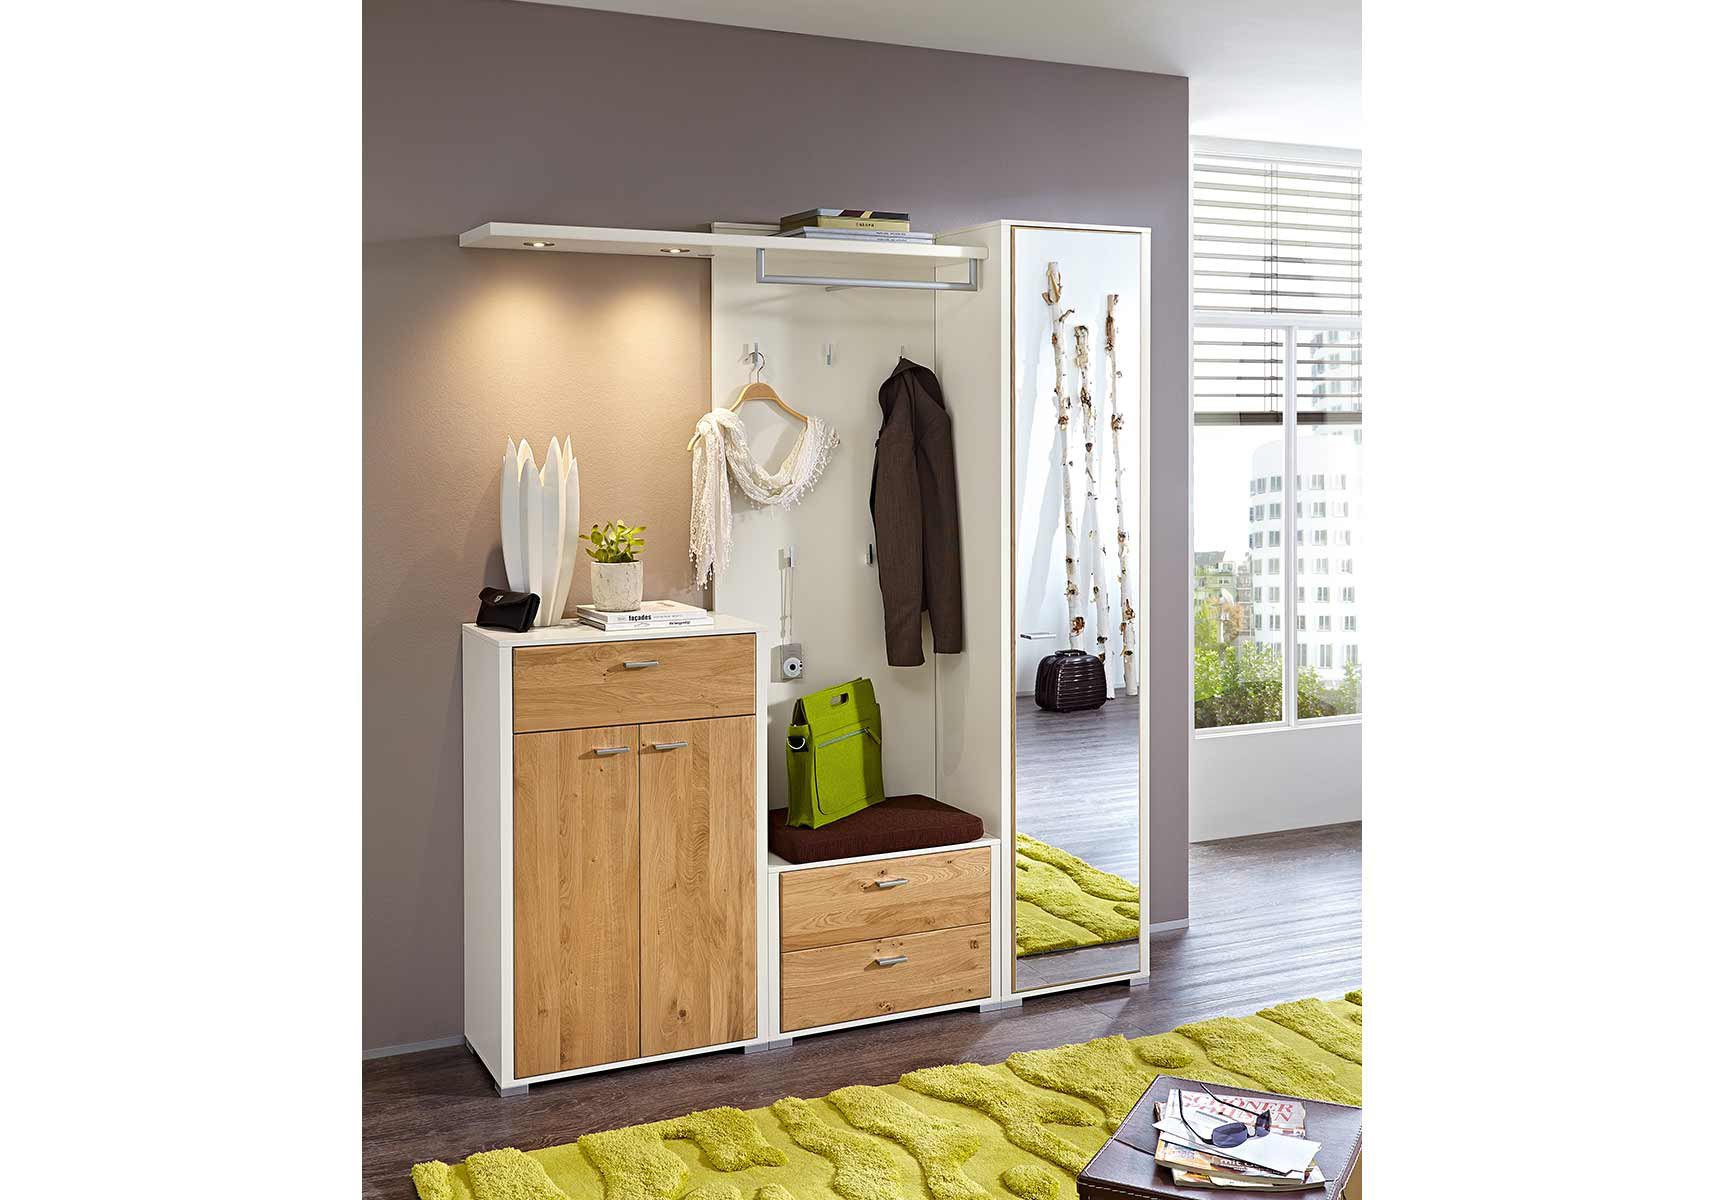 garderobe florenz von leinkenjost in lack wei mit masiver. Black Bedroom Furniture Sets. Home Design Ideas